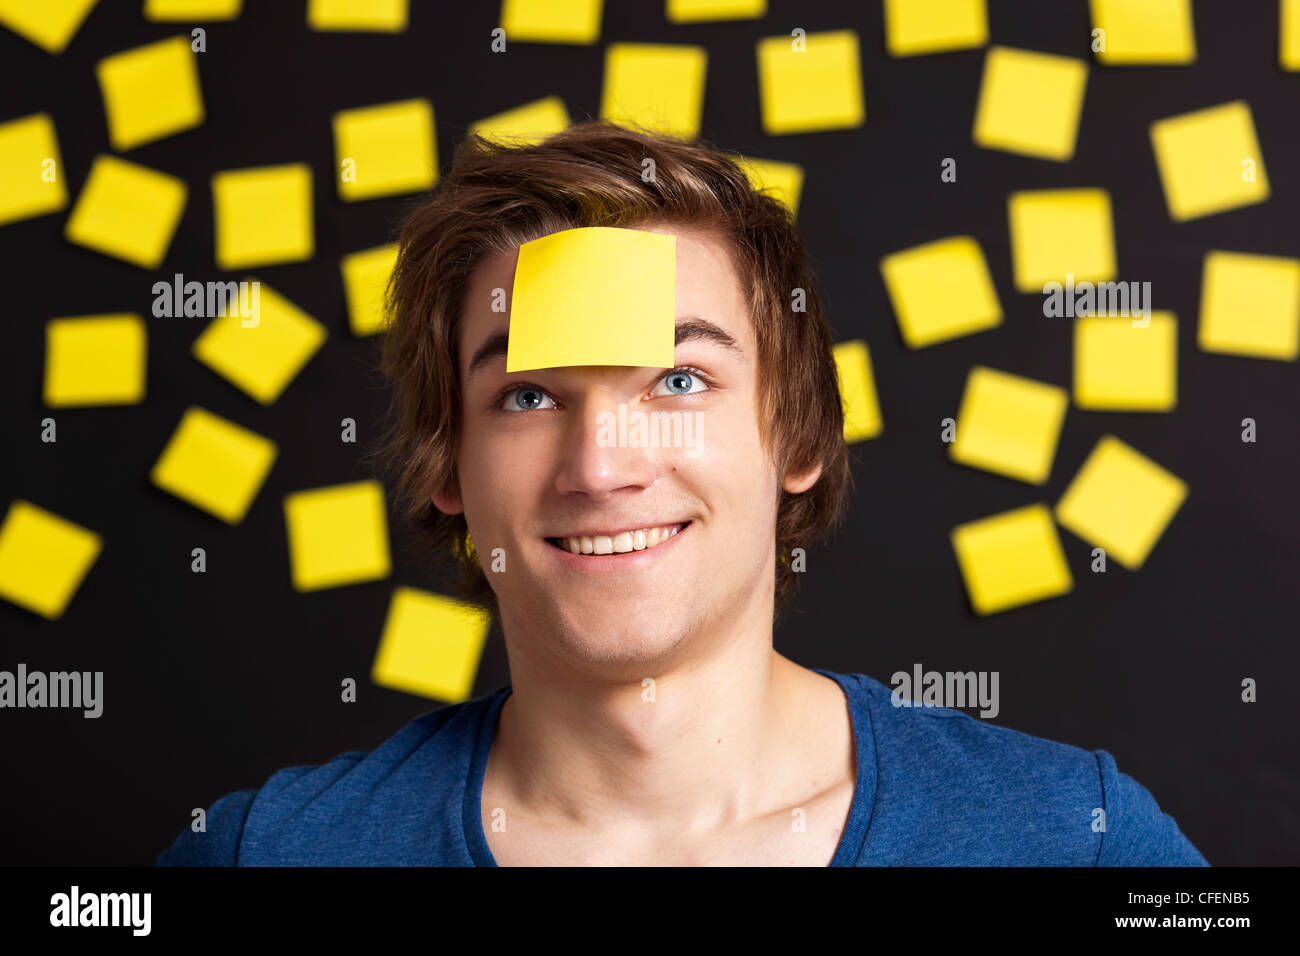 Happy student with a reminder on the head, and with more yellow paper notes in the background Stock Photo